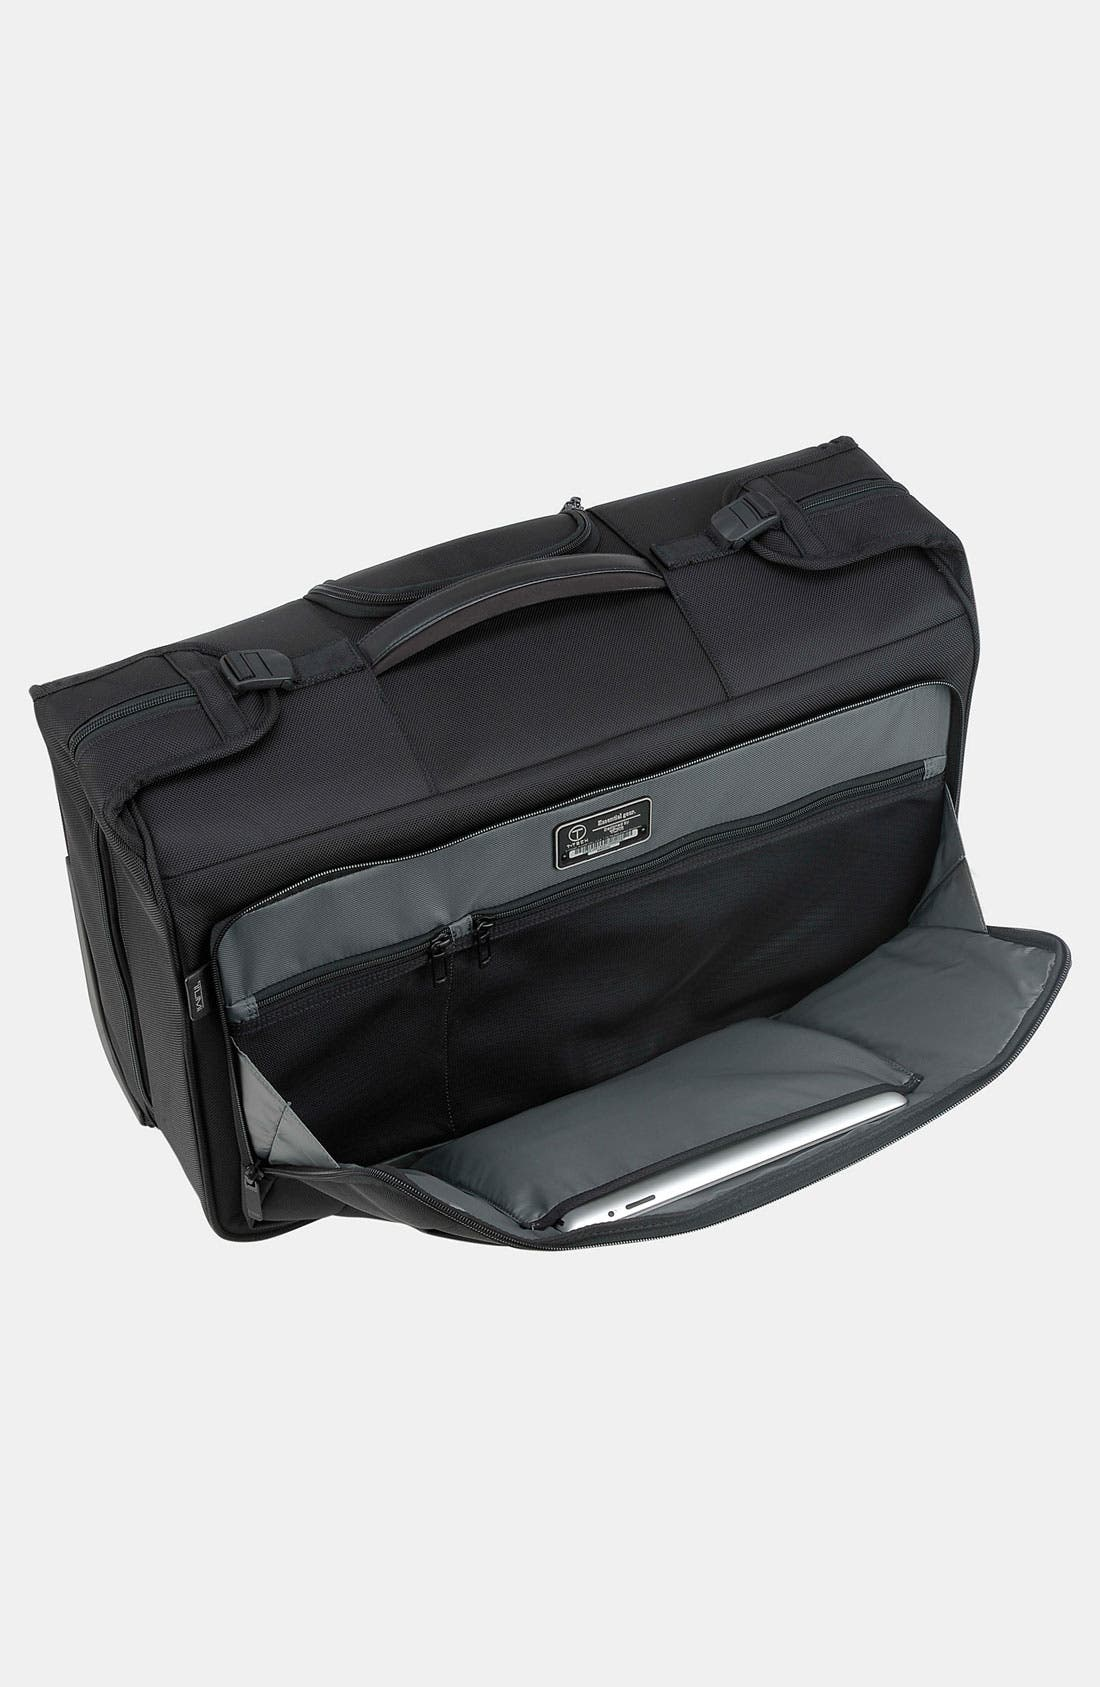 Alternate Image 3  - Tumi 'T-Tech Network' Wheeled Carry-On Garment Bag (22 Inch)